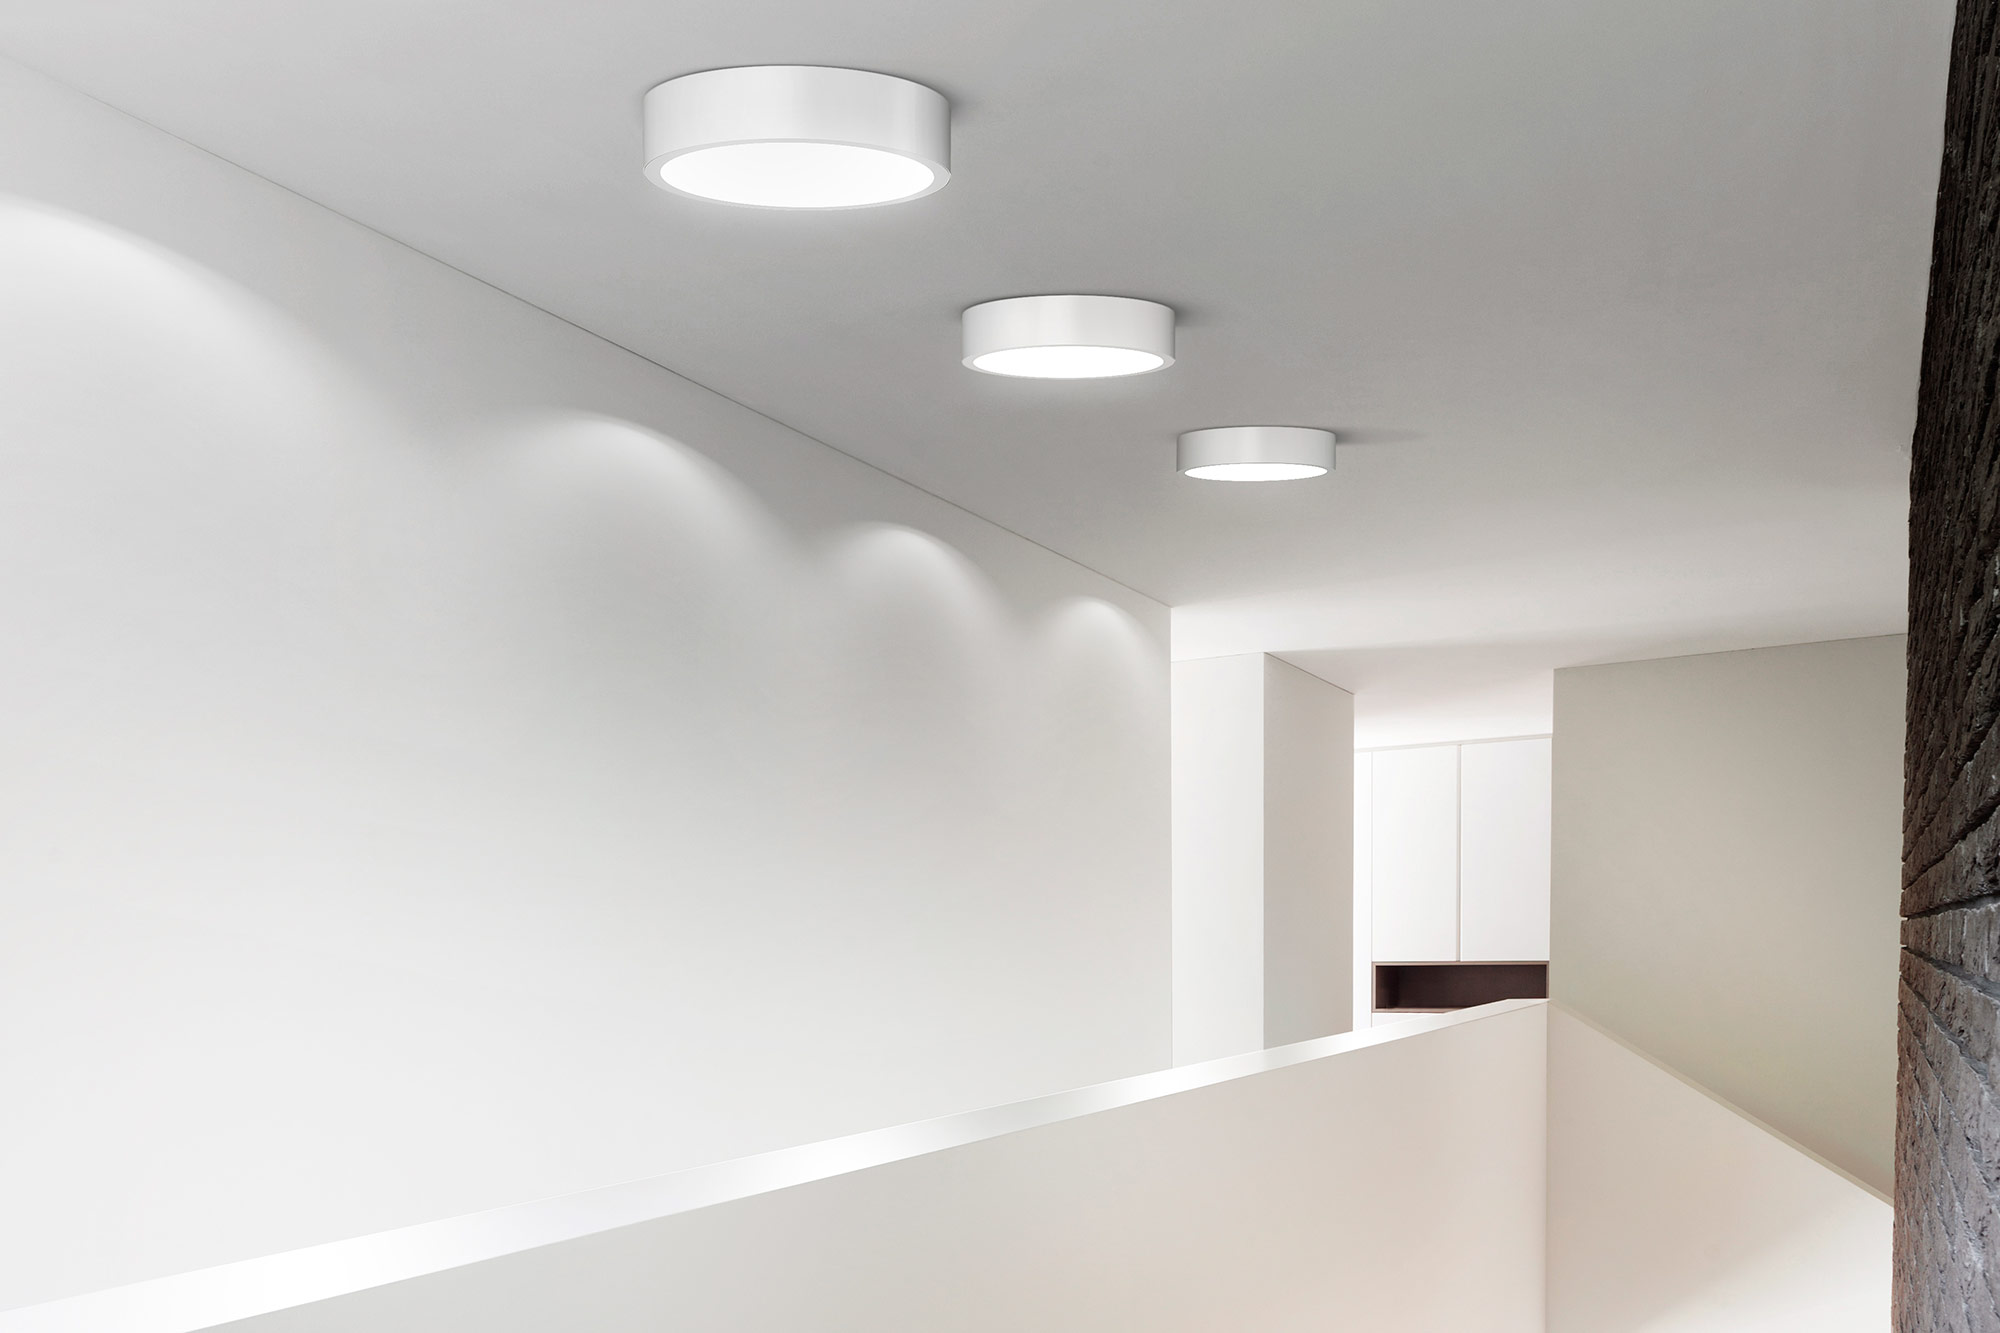 PLANET RING Lampada da soffitto Collezione Planet Ring by PANZERI